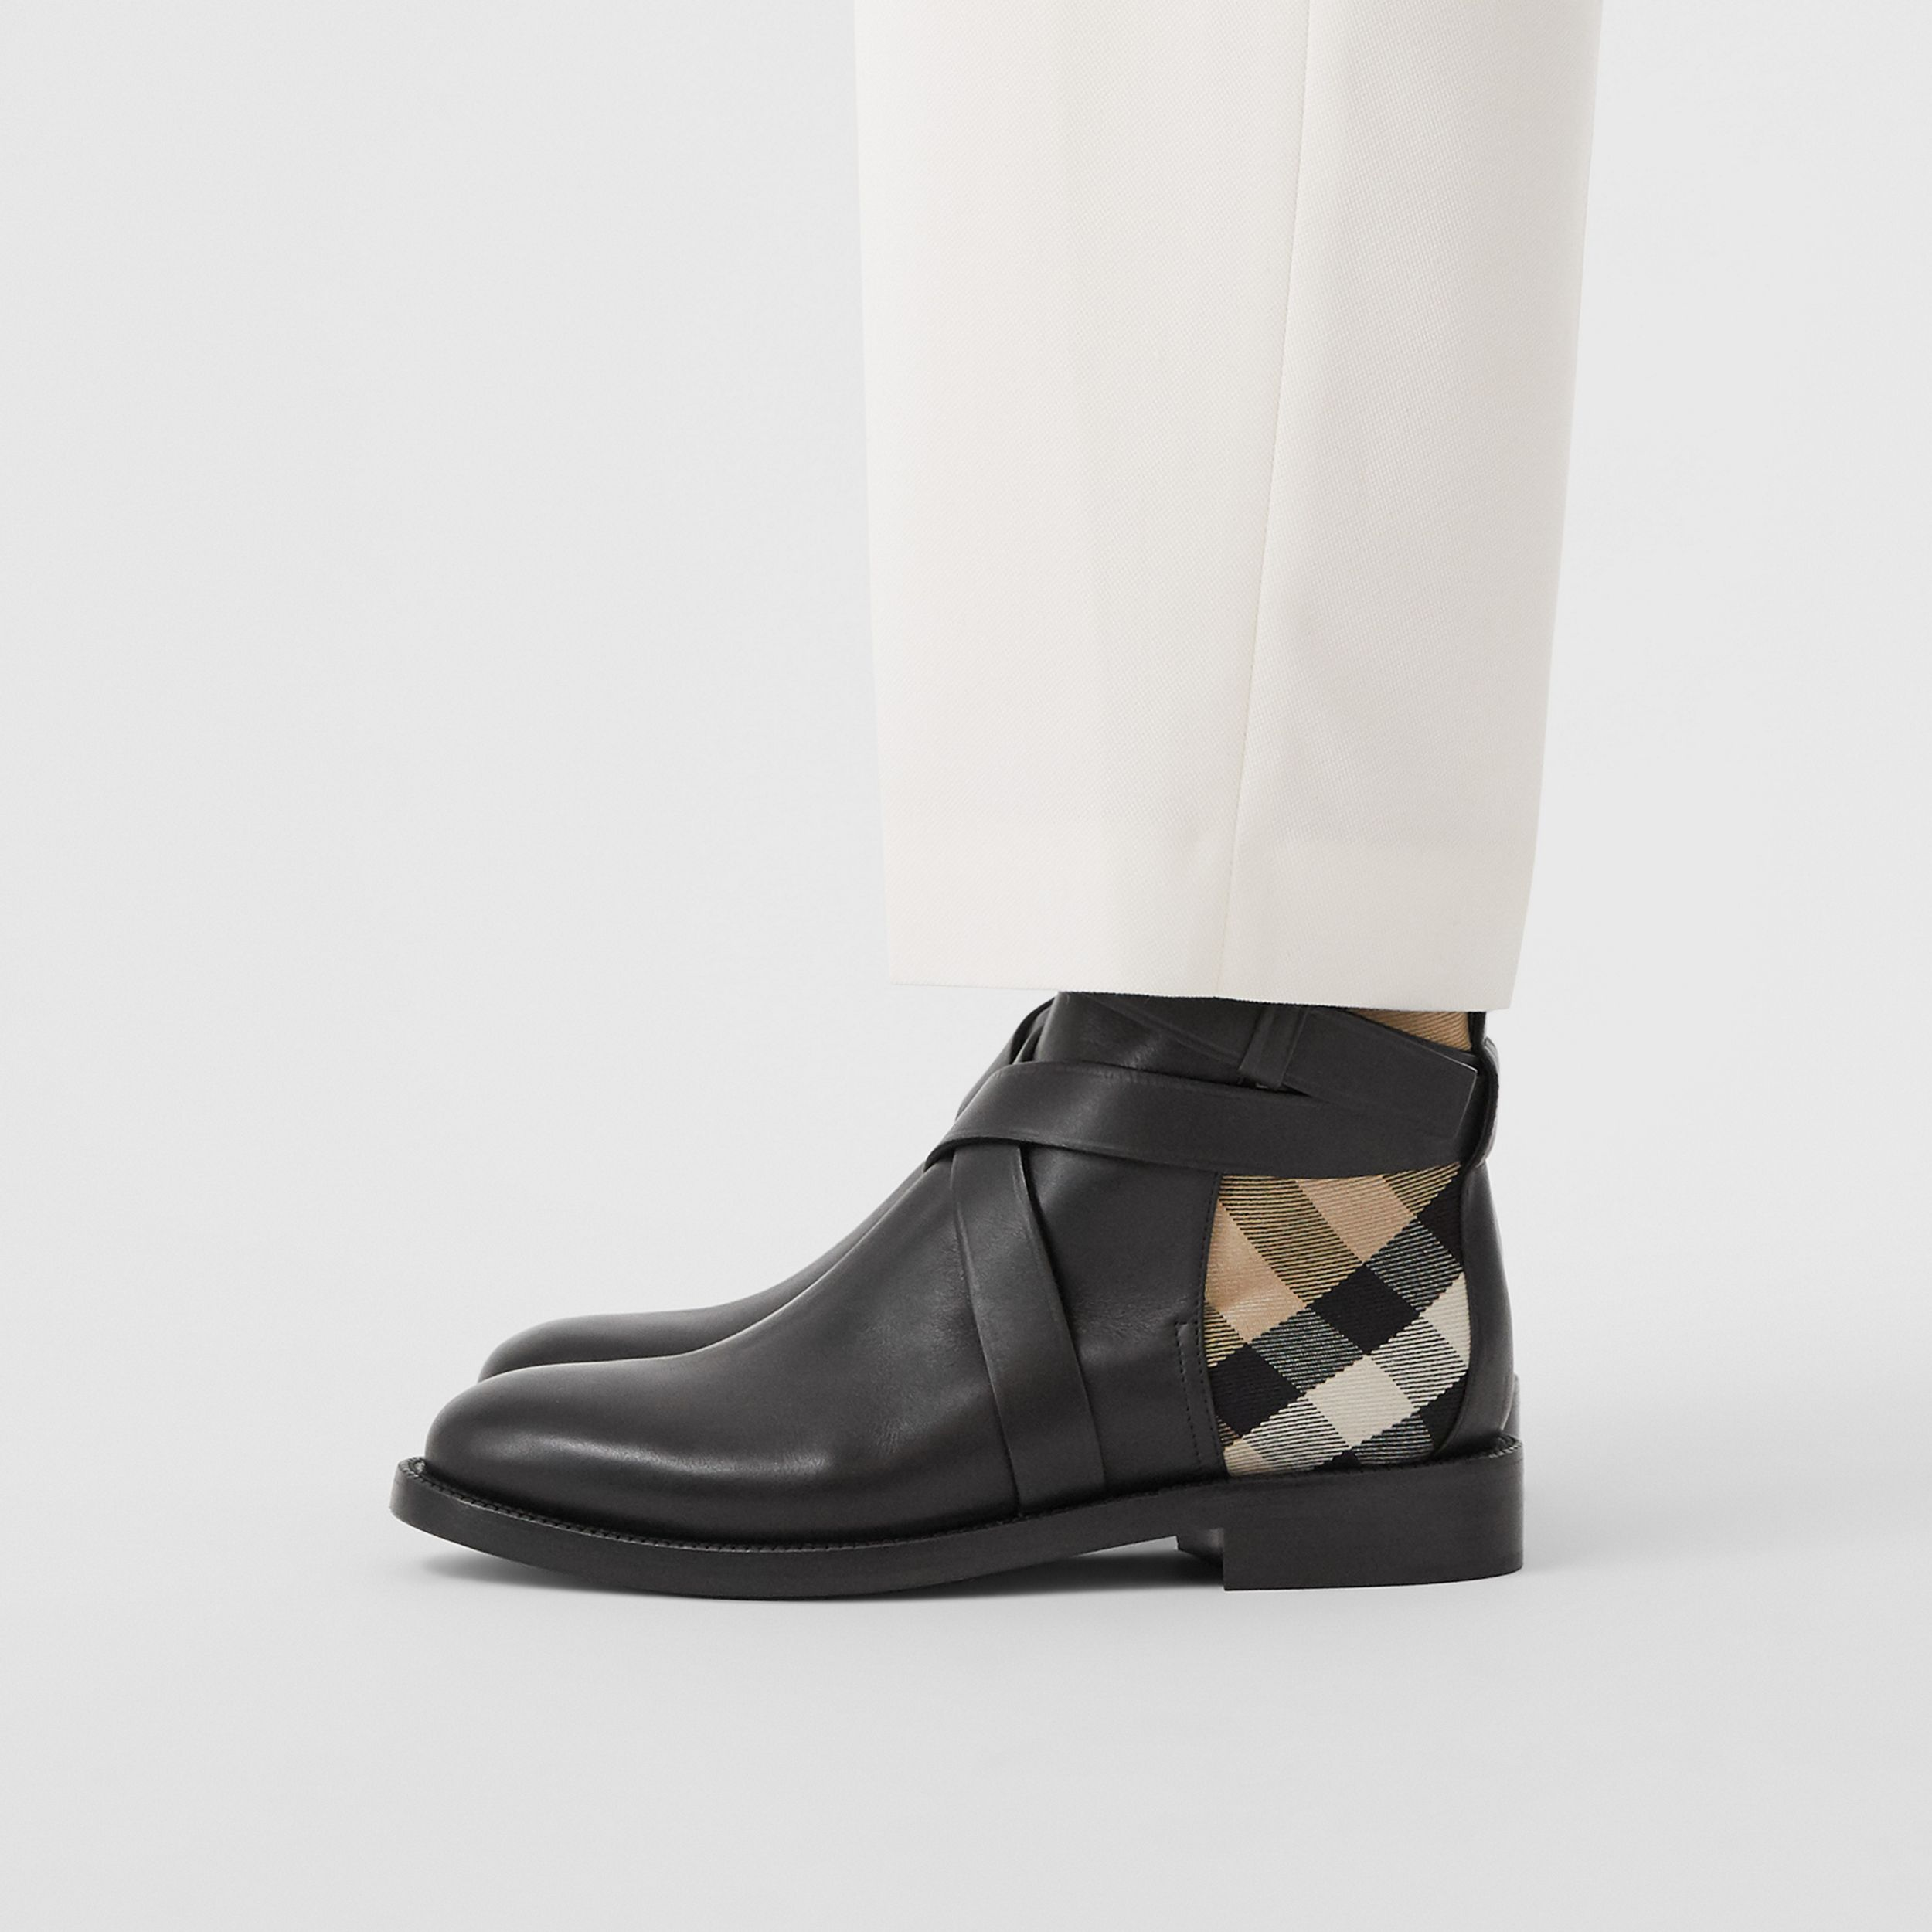 House Check and Leather Ankle Boots in Black/archive Beige - Women | Burberry - 3